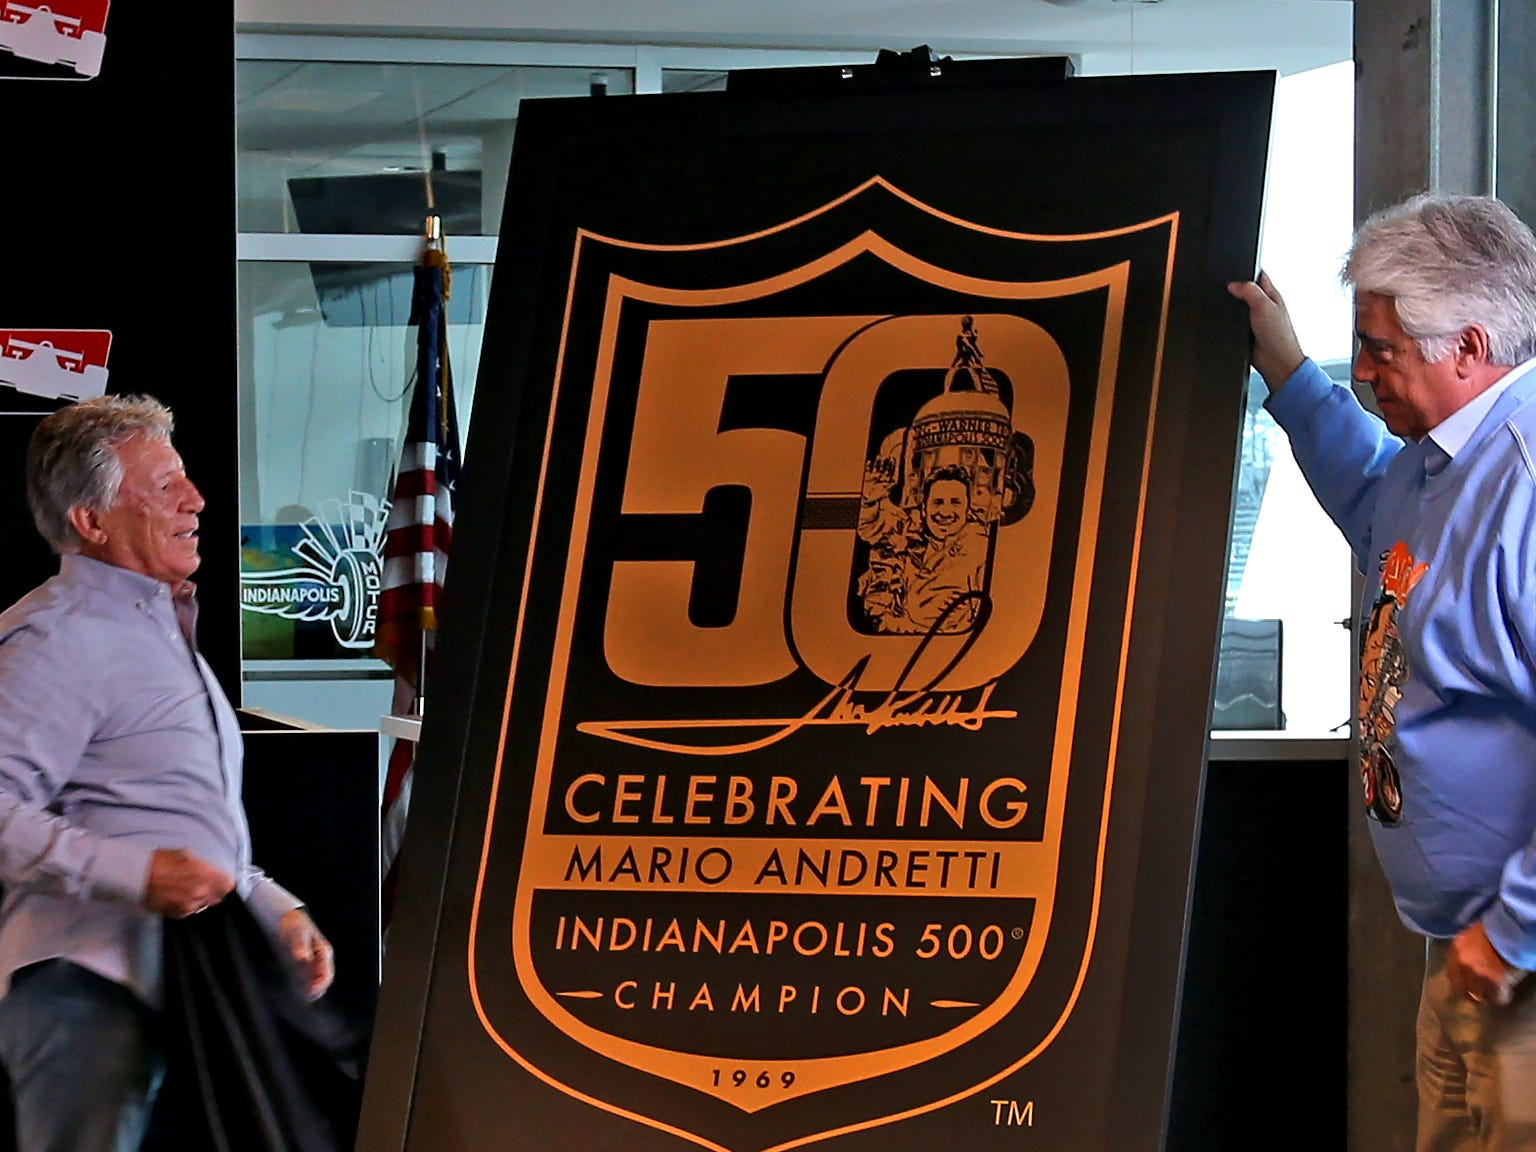 during a press conference on the 50th anniversary of Mario Andretti's winning of the Indy 500, at Indianapolis Motor Speedway, Wednesday, Jan. 9, 2019.